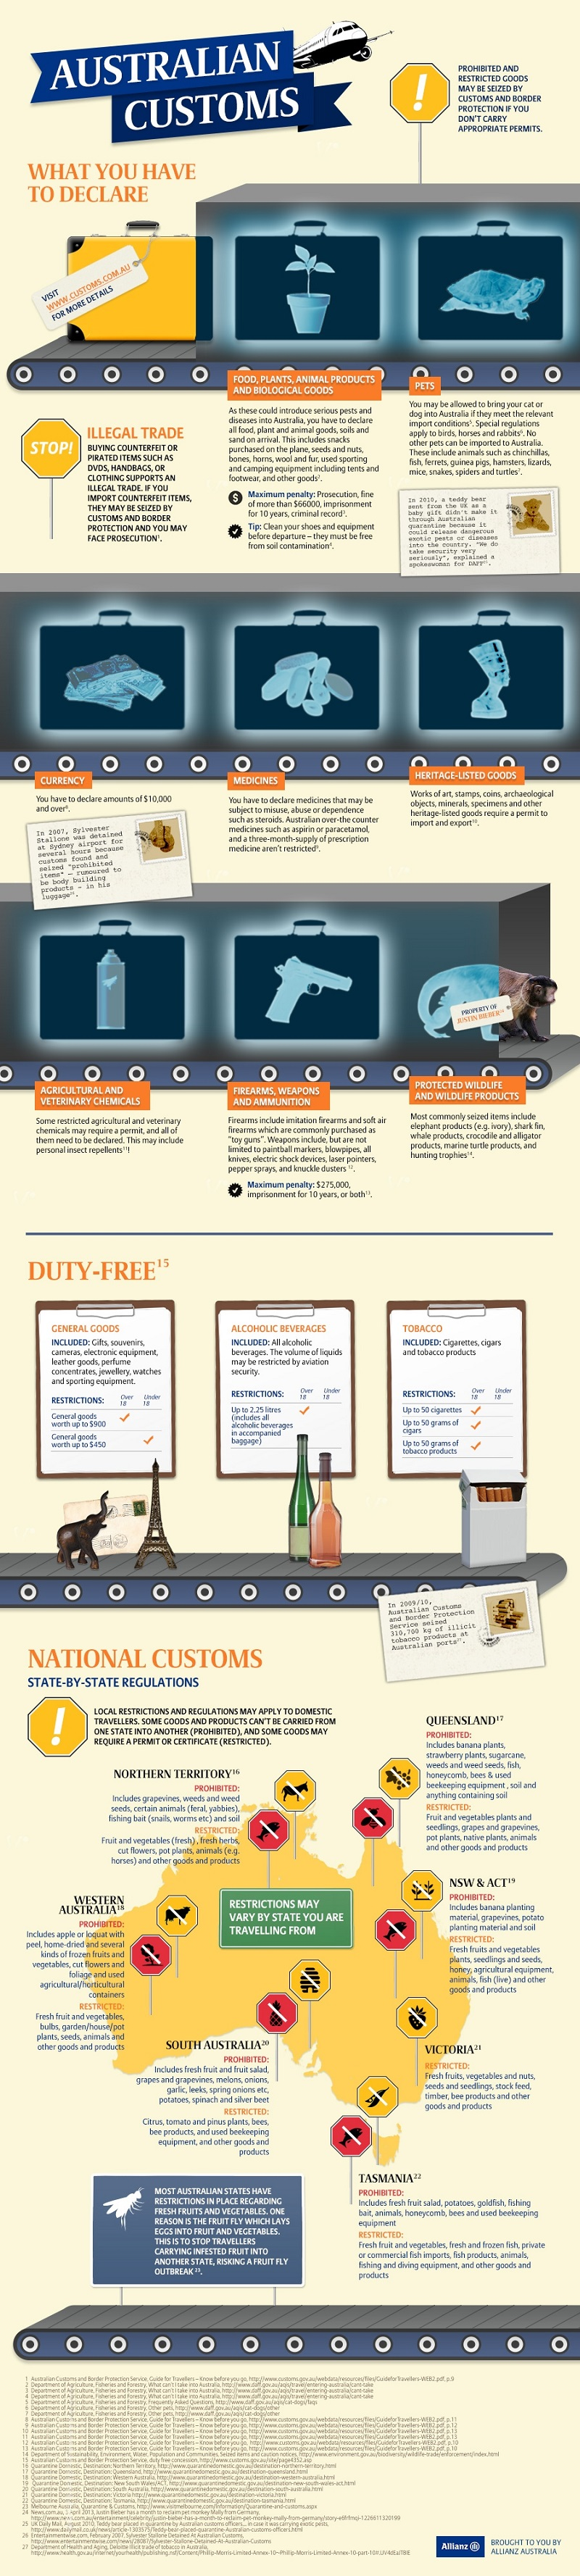 Customs Australia Infographic